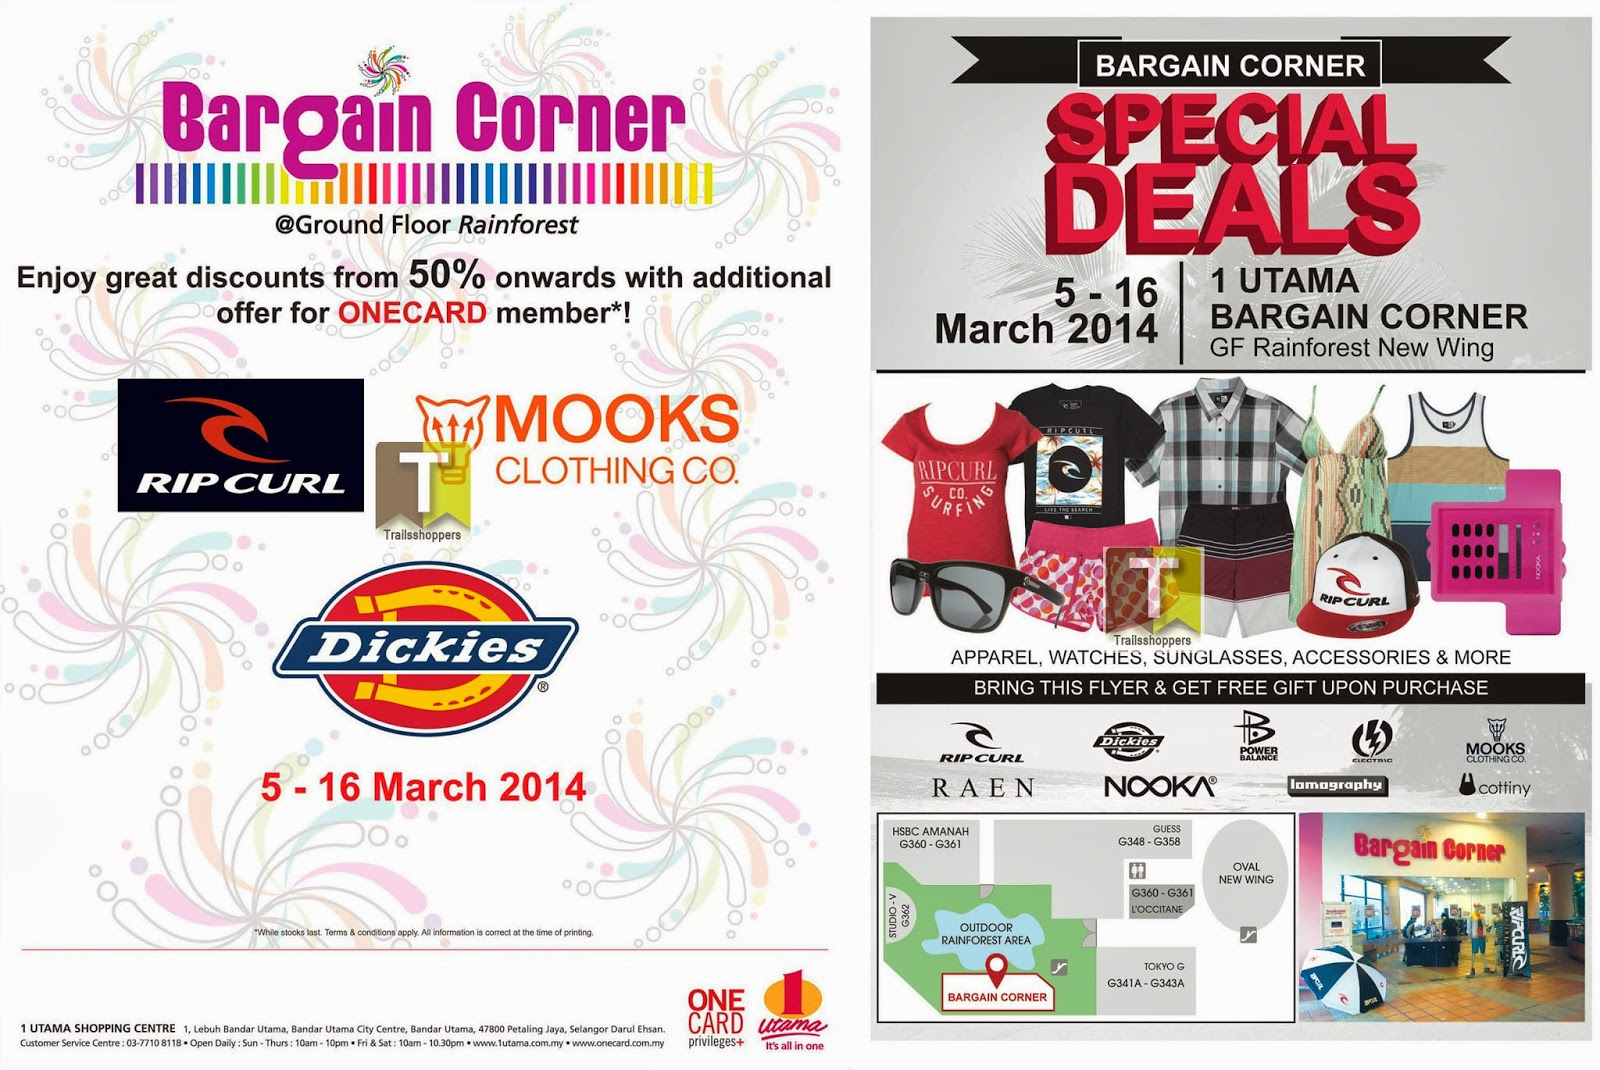 Bargain Corner Special Deals 1 Utama Watches Sunglasses RipCurl